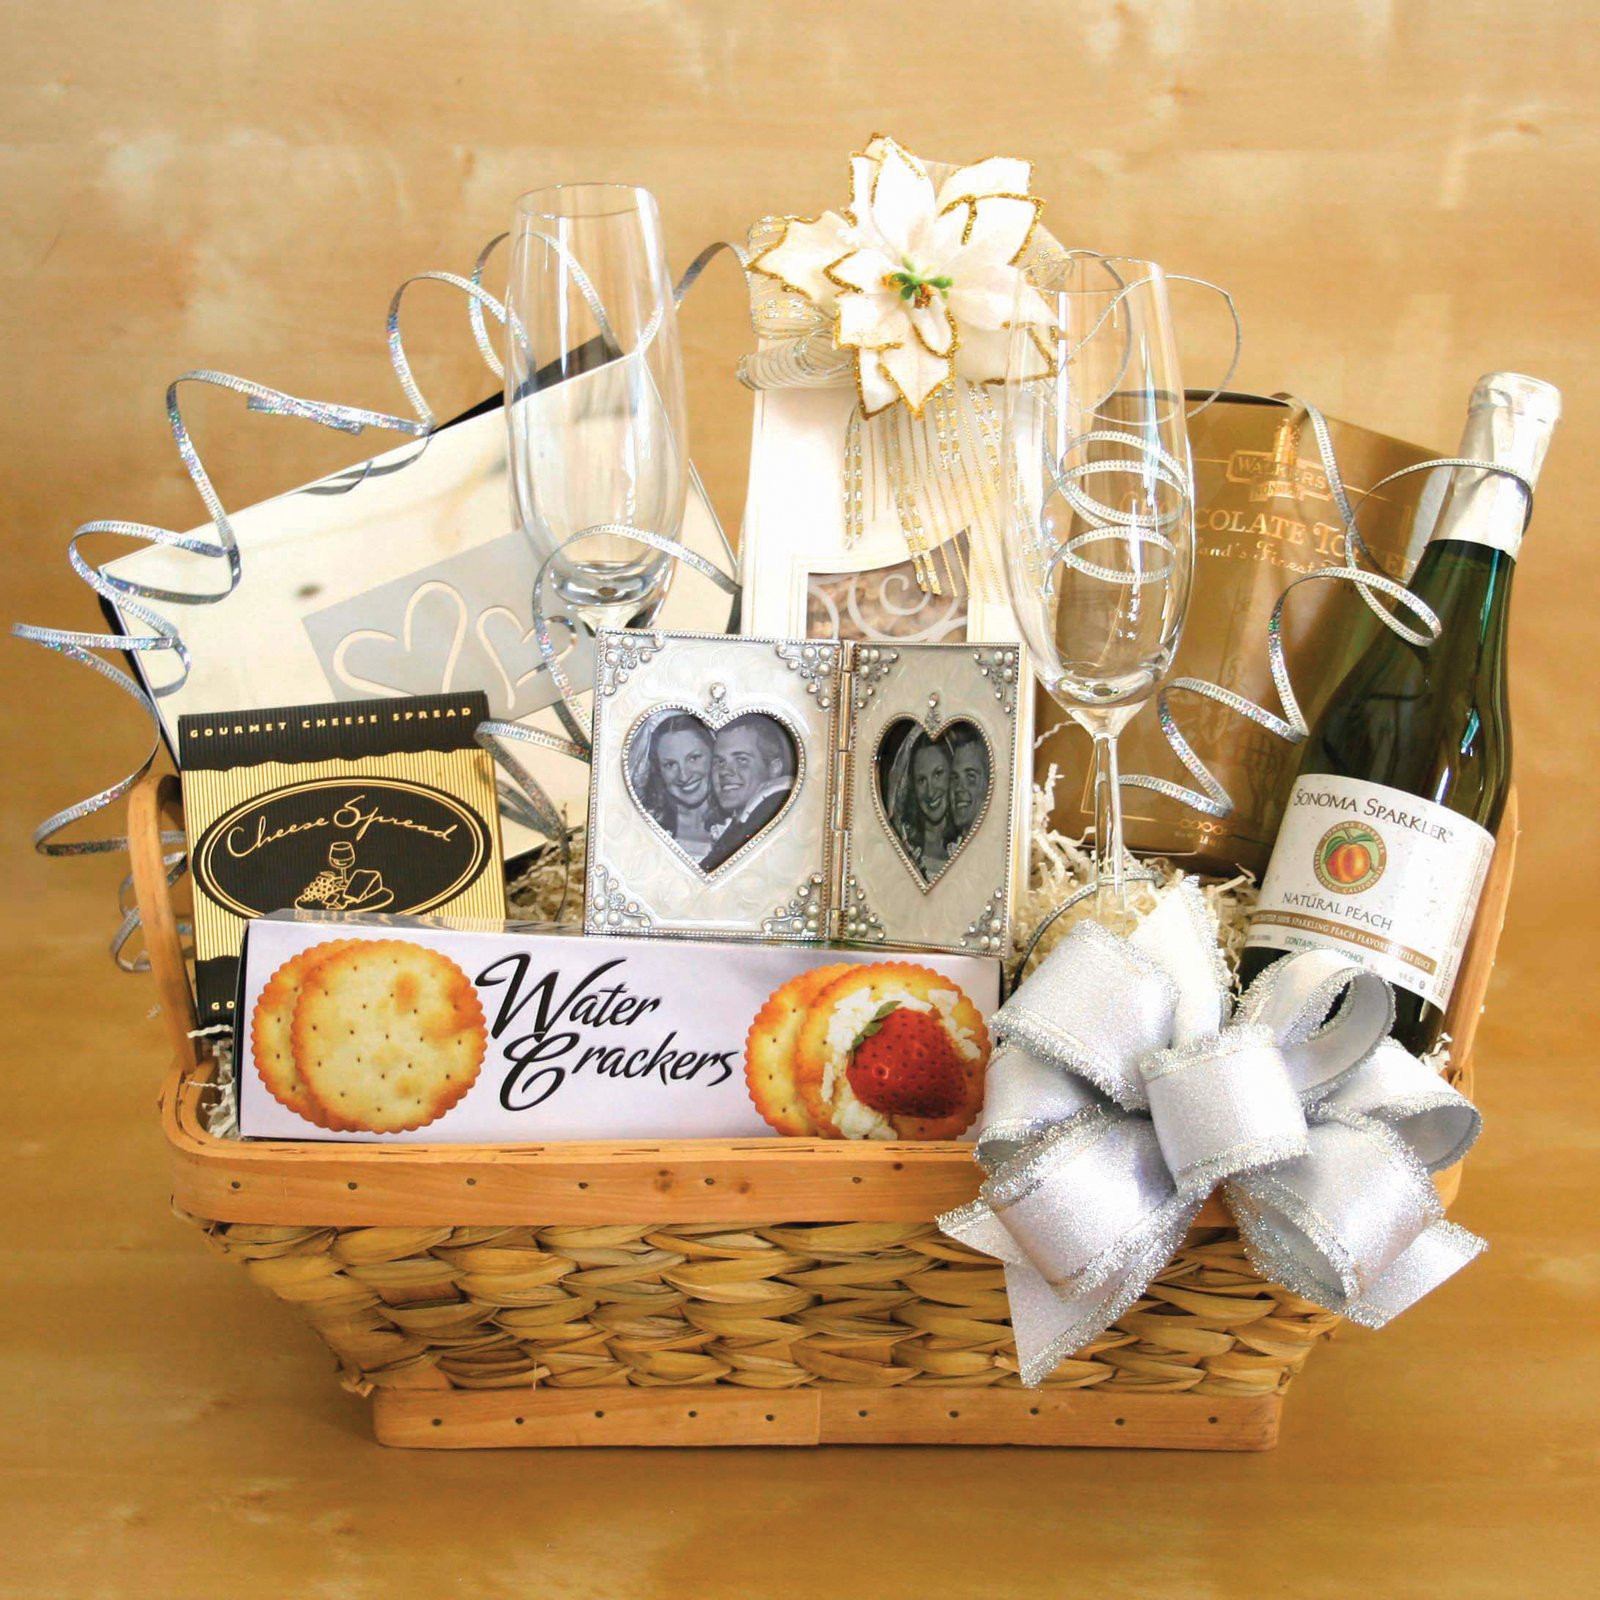 Best ideas about Honeymoon Gift Basket Ideas . Save or Pin Simple Wedding Gifts Now.